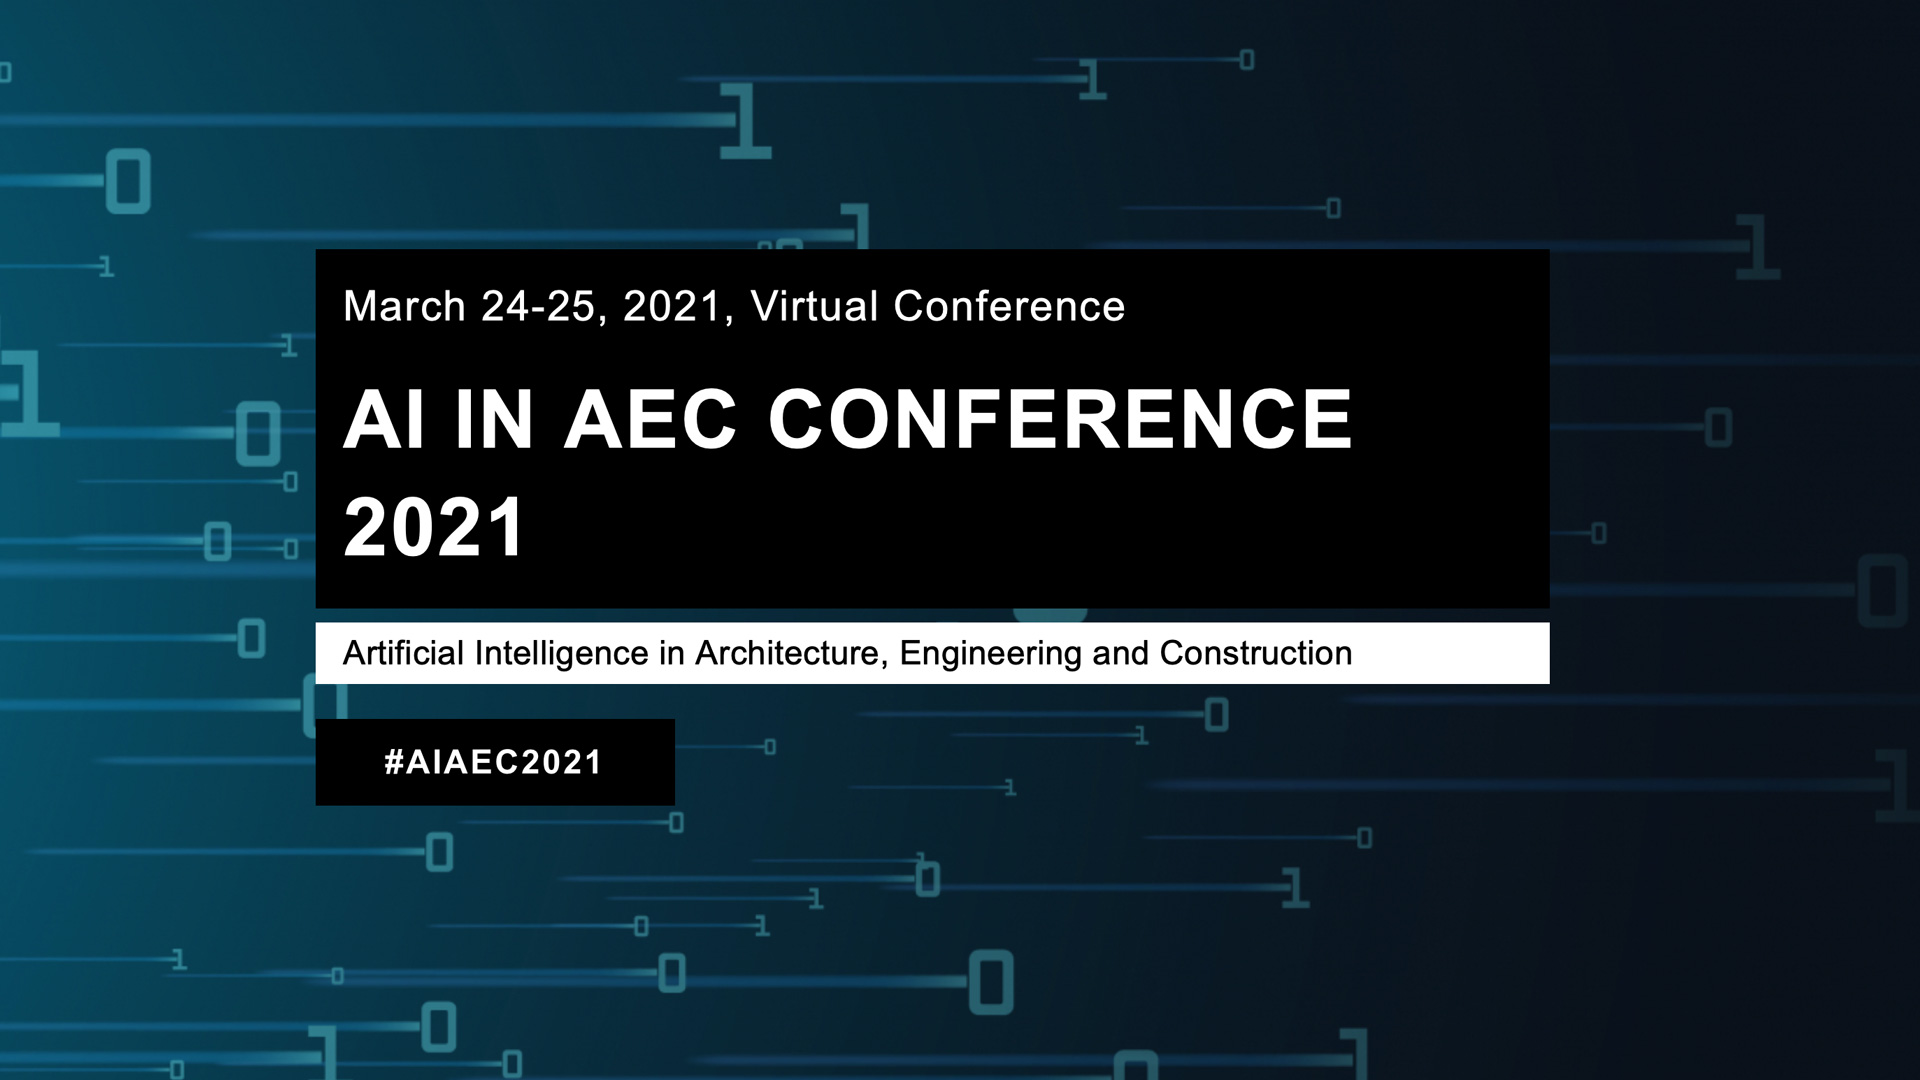 ai in aec conference